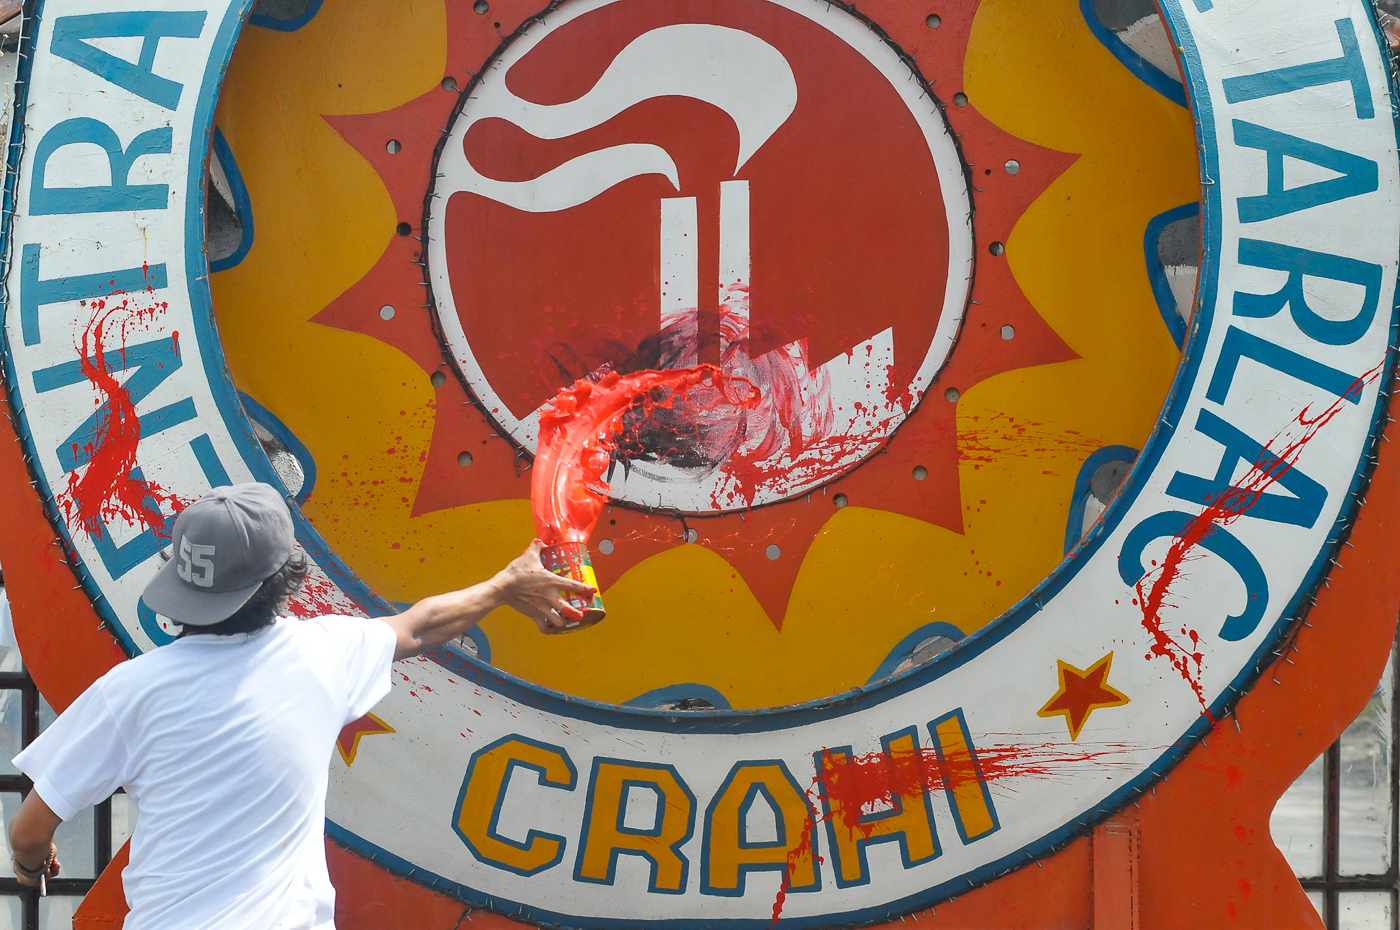 PROTEST. Activists throw red paint against the logo of the Central Azucarera De Tarlac during the 12th year anniversary of the Hacienda Luisita Massacre.